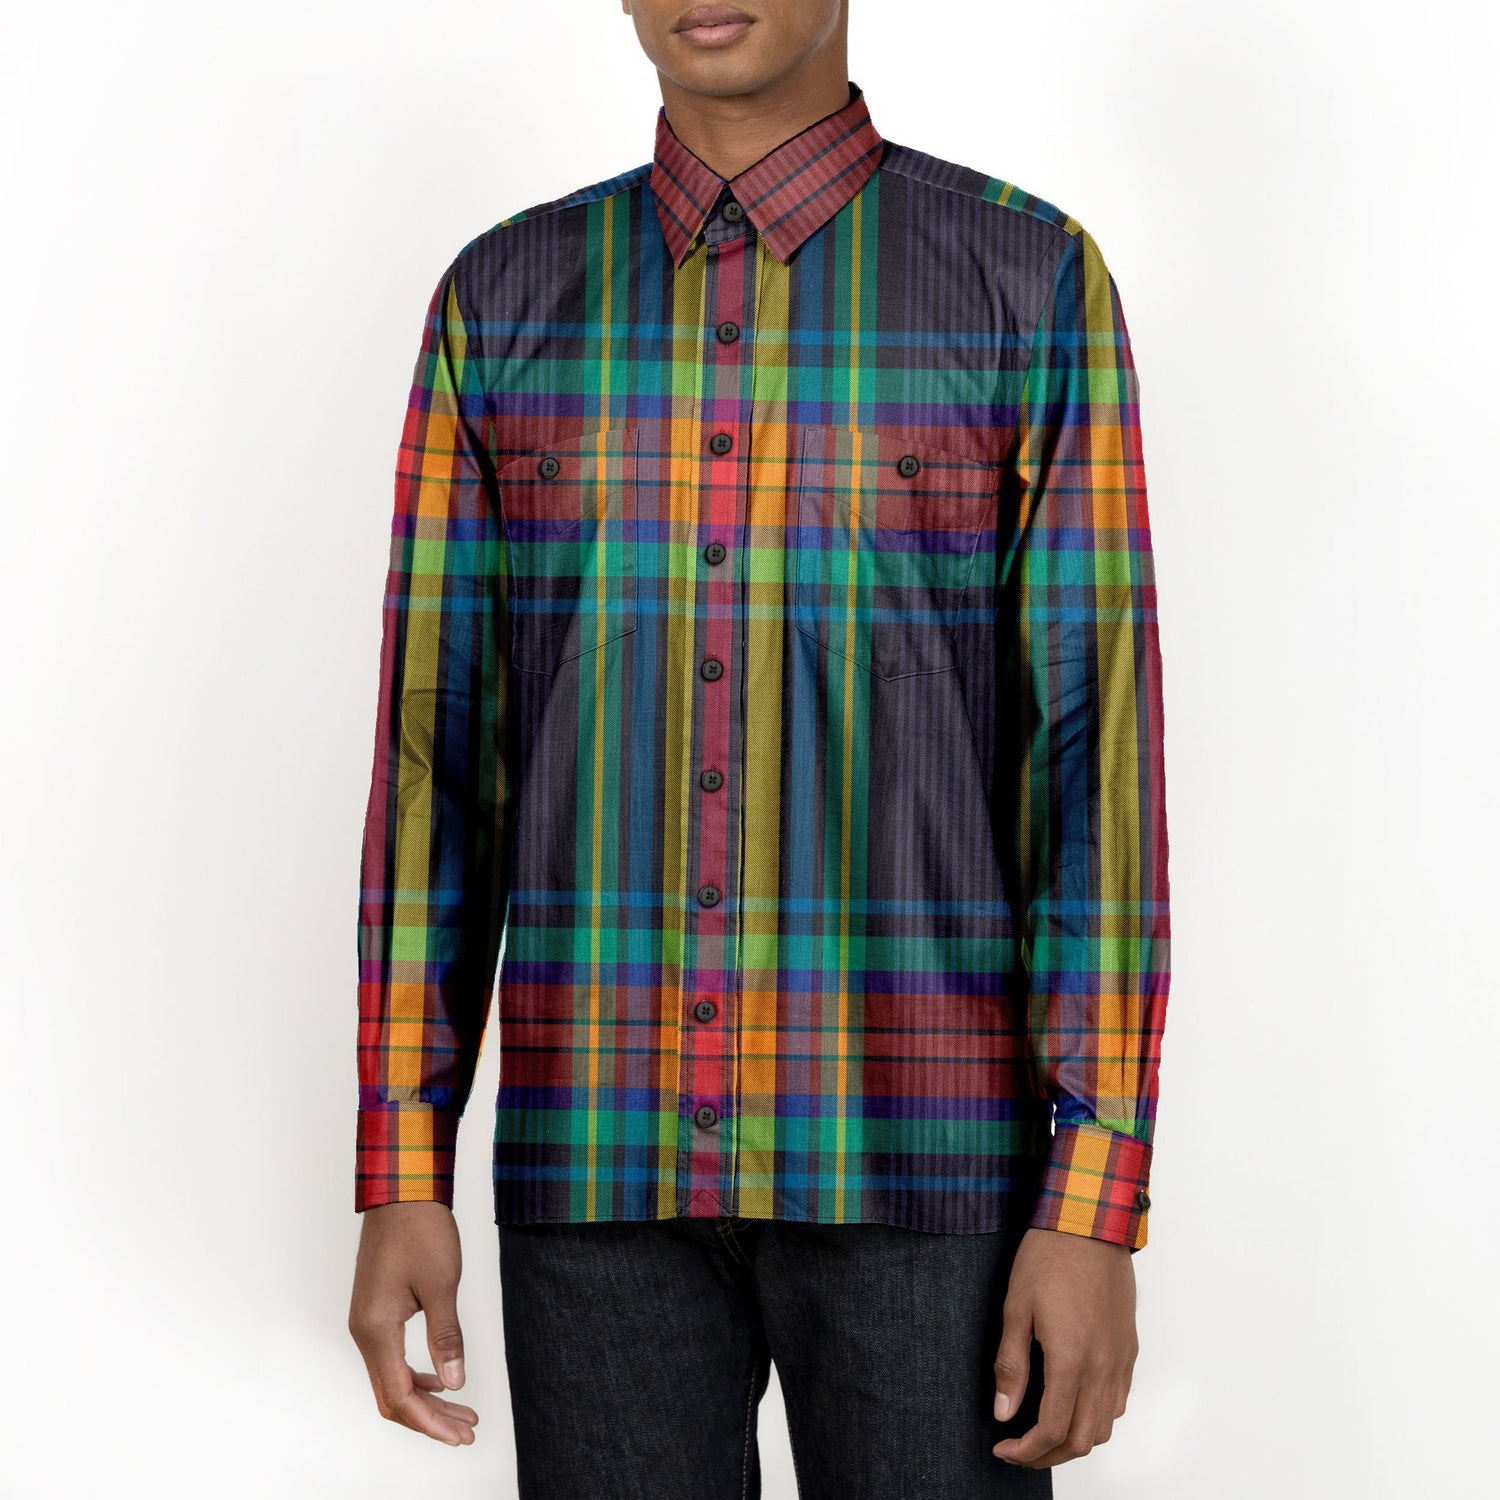 The Gala Plaid Shirt